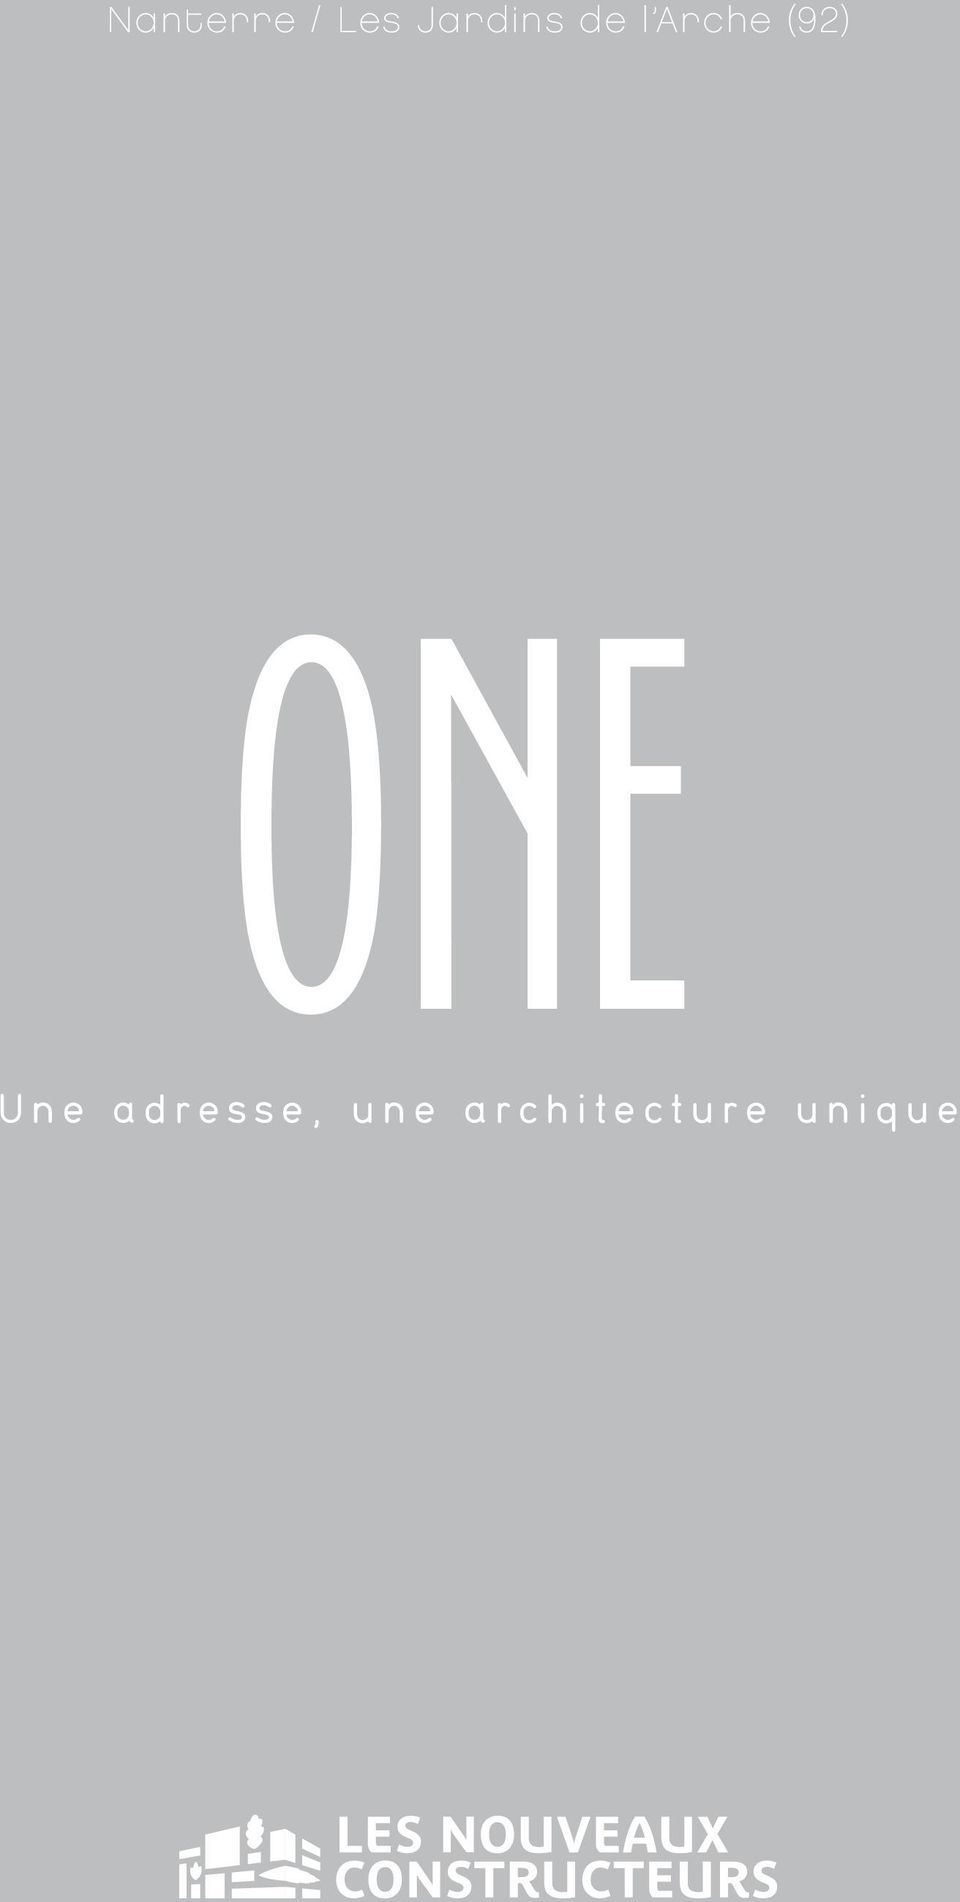 (92) one Une